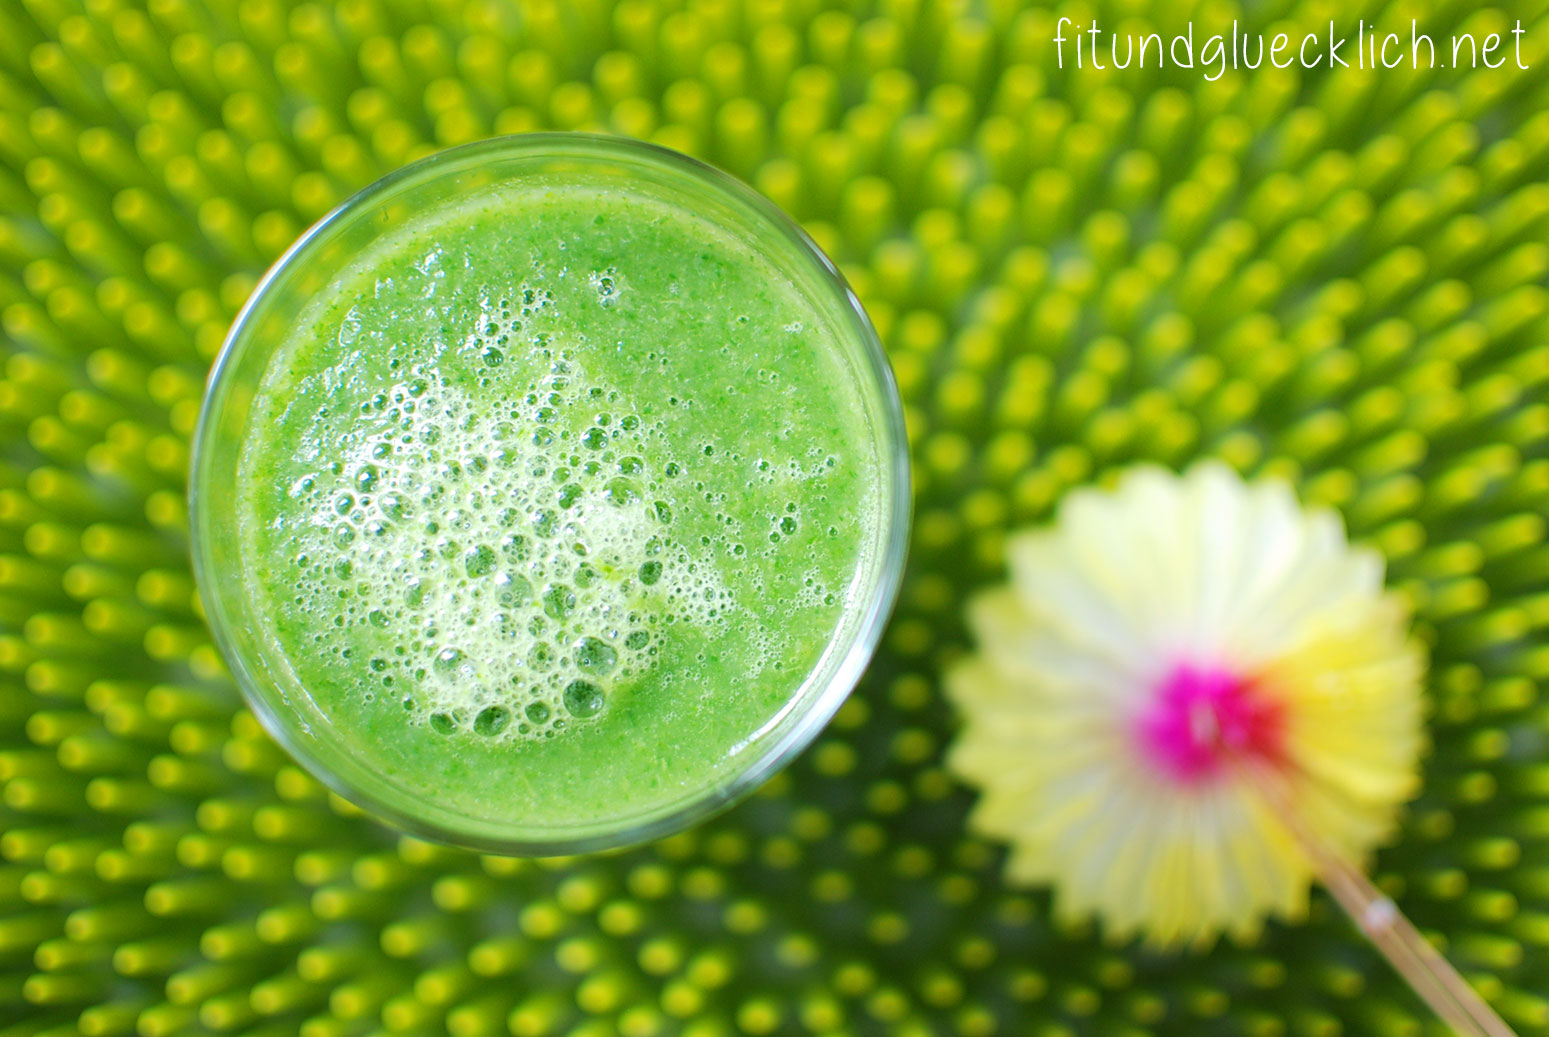 green smoothie, immune booster, clean eating, fitundgluecklich.net